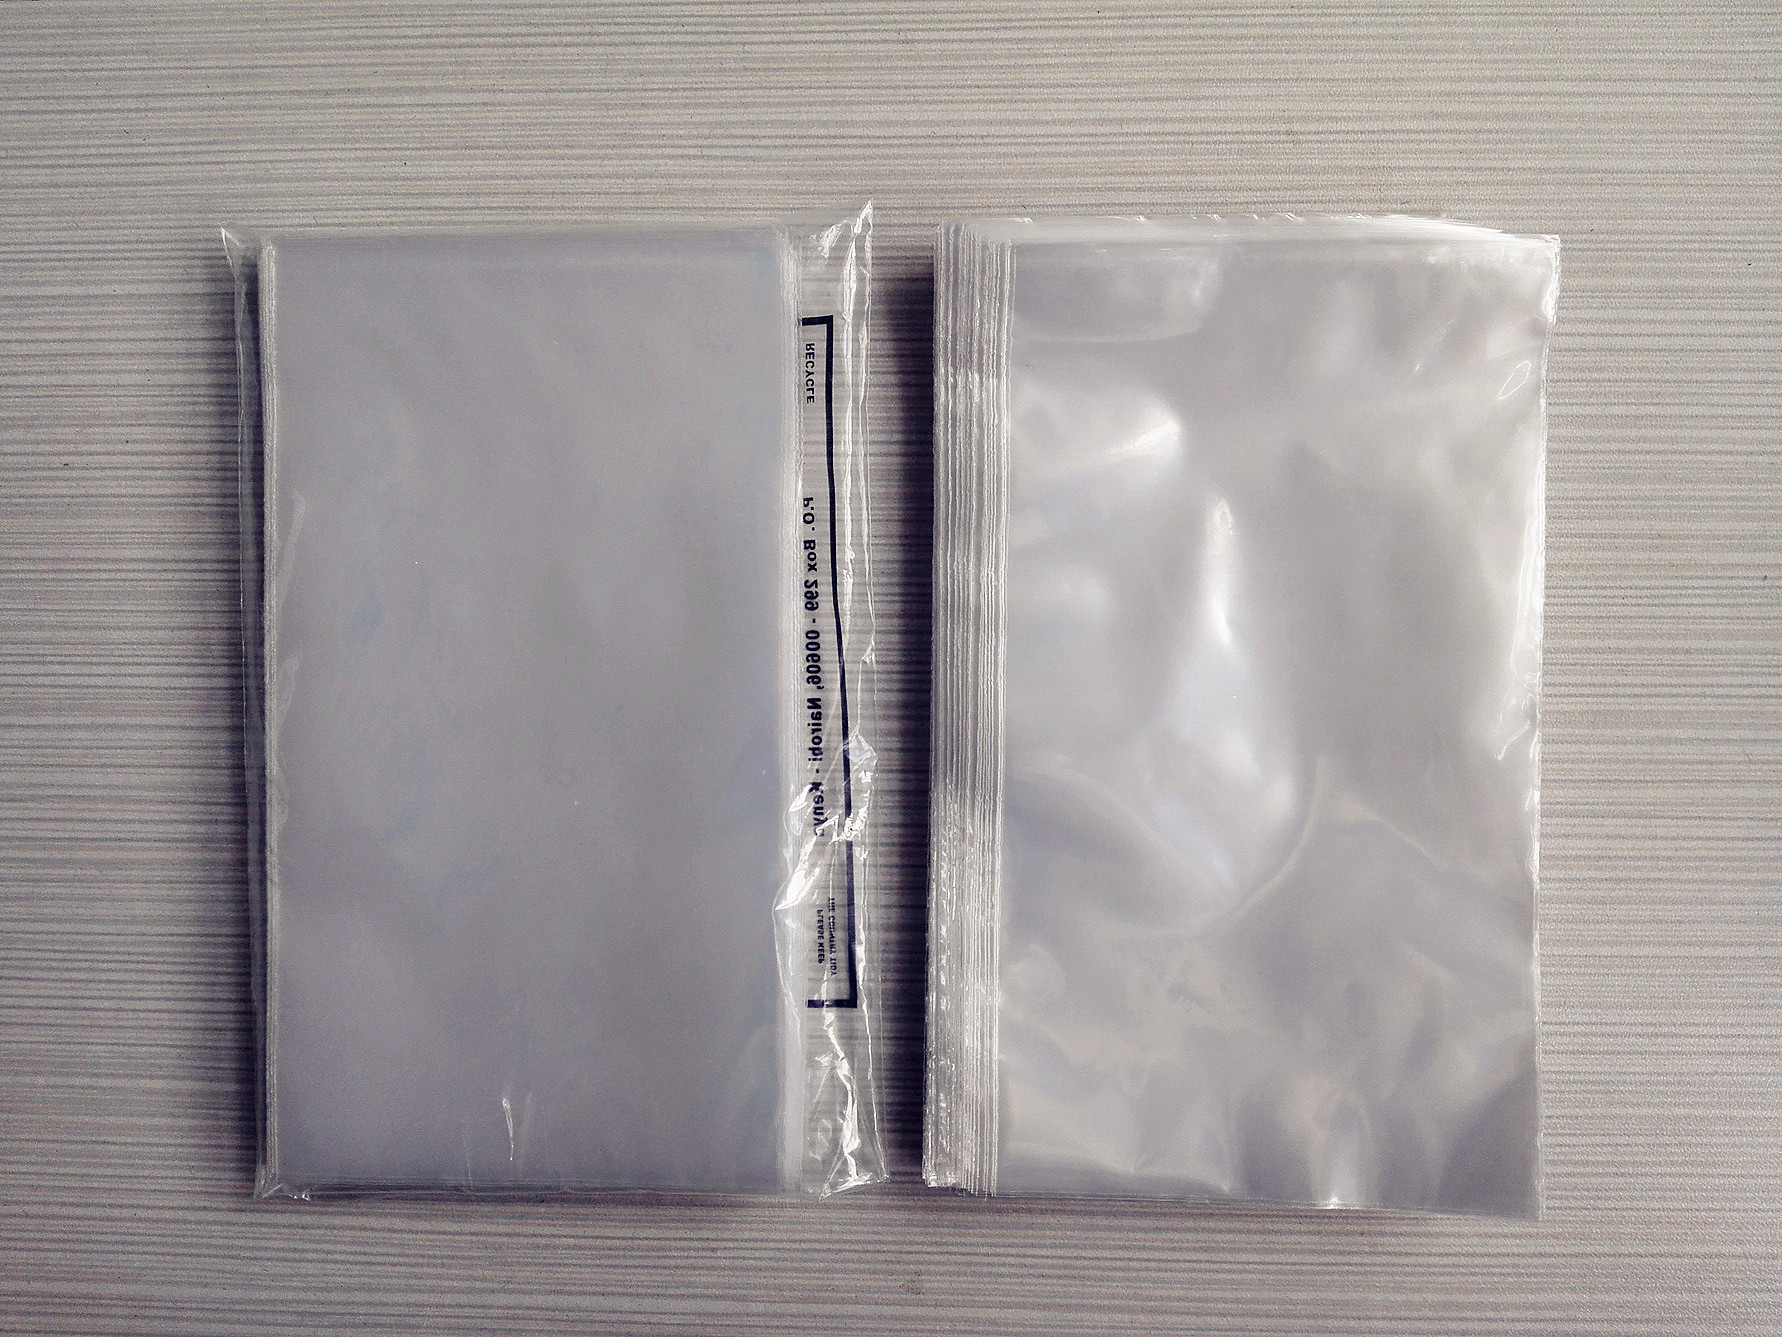 HDPE side seal bags, LDPE side seal bags, Pp side seal bags